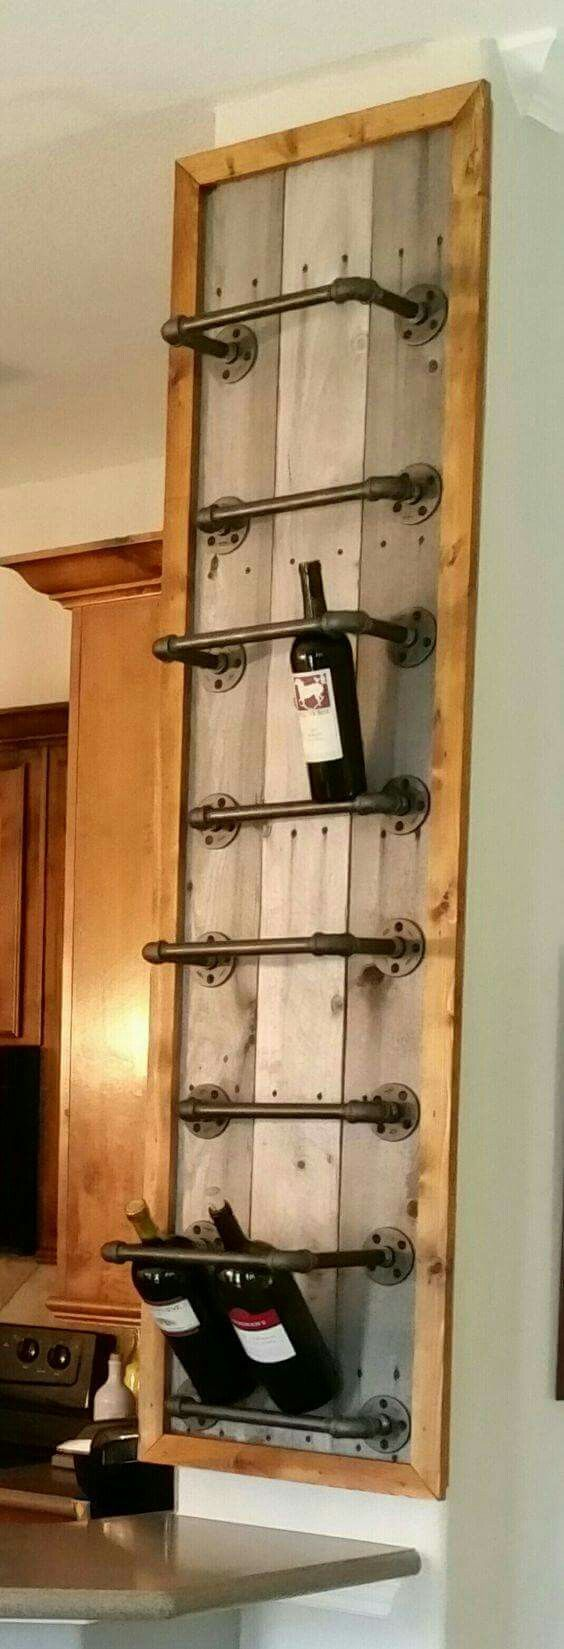 Kitchen Wine Rack 17 Best Ideas About Wine Bottle Storage On Pinterest Wine Bottle